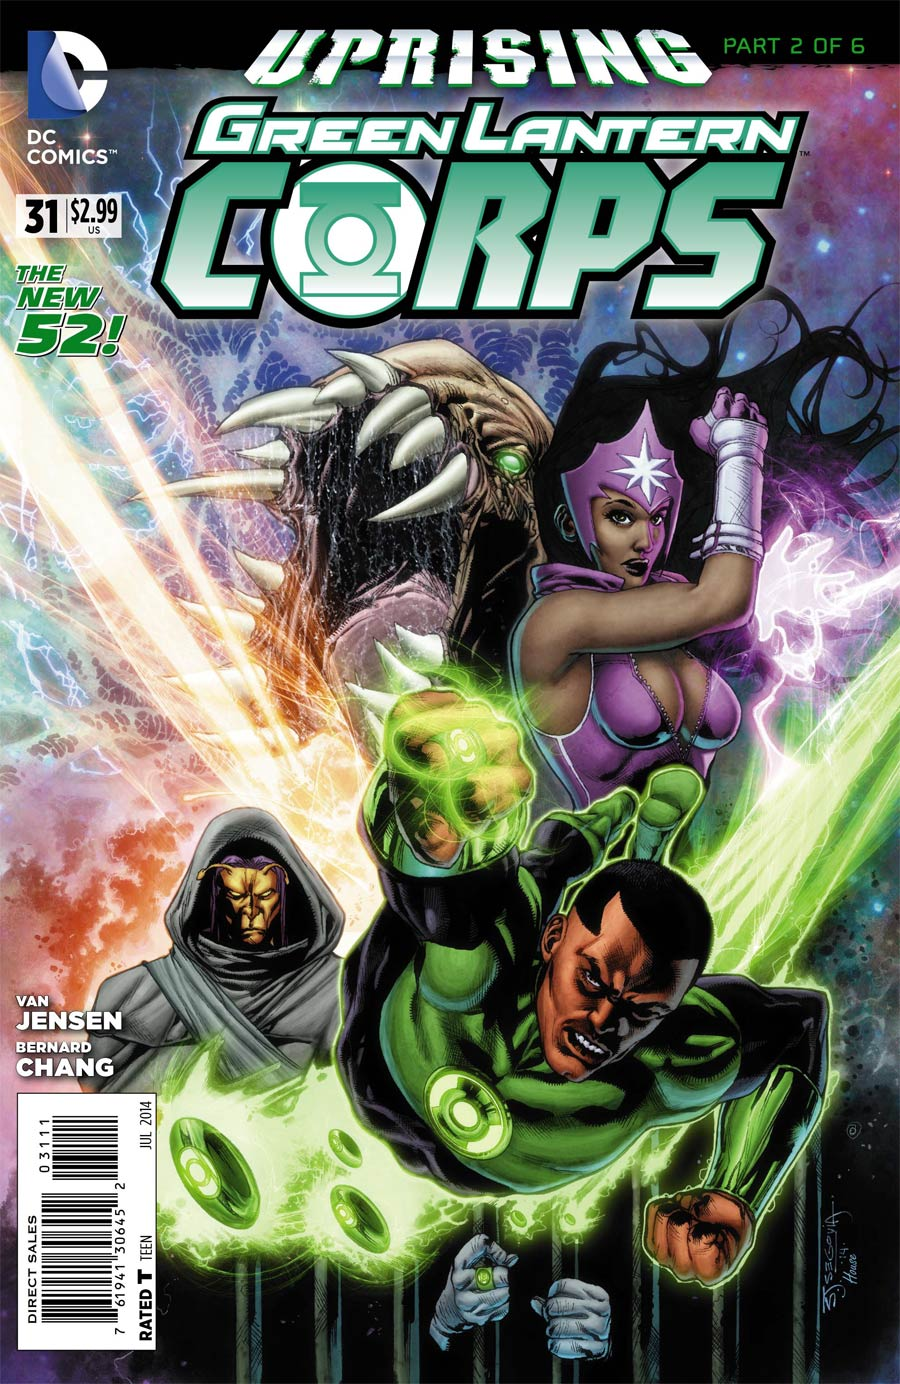 Green Lantern Corps Vol 3 #31 Cover A Regular Stephen Segovia Cover (Uprising Part 2)